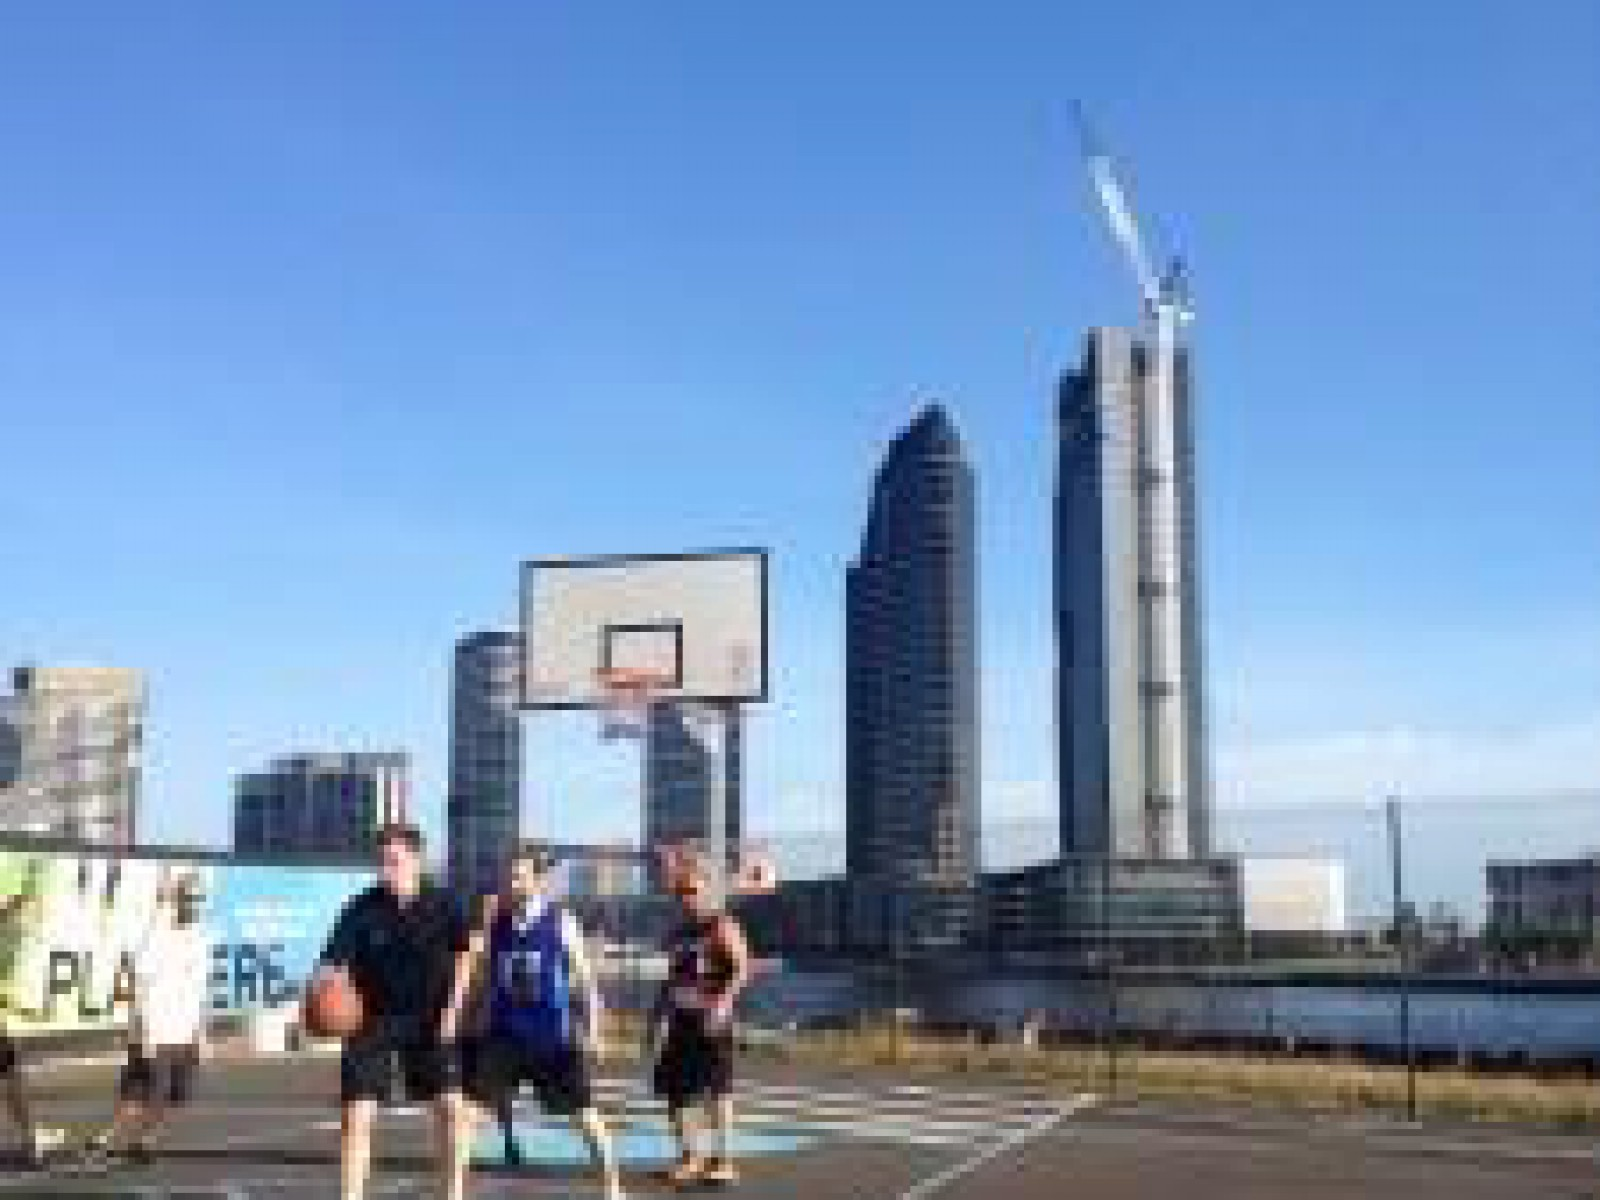 Docklands 3pt Court, Docklands, Australia